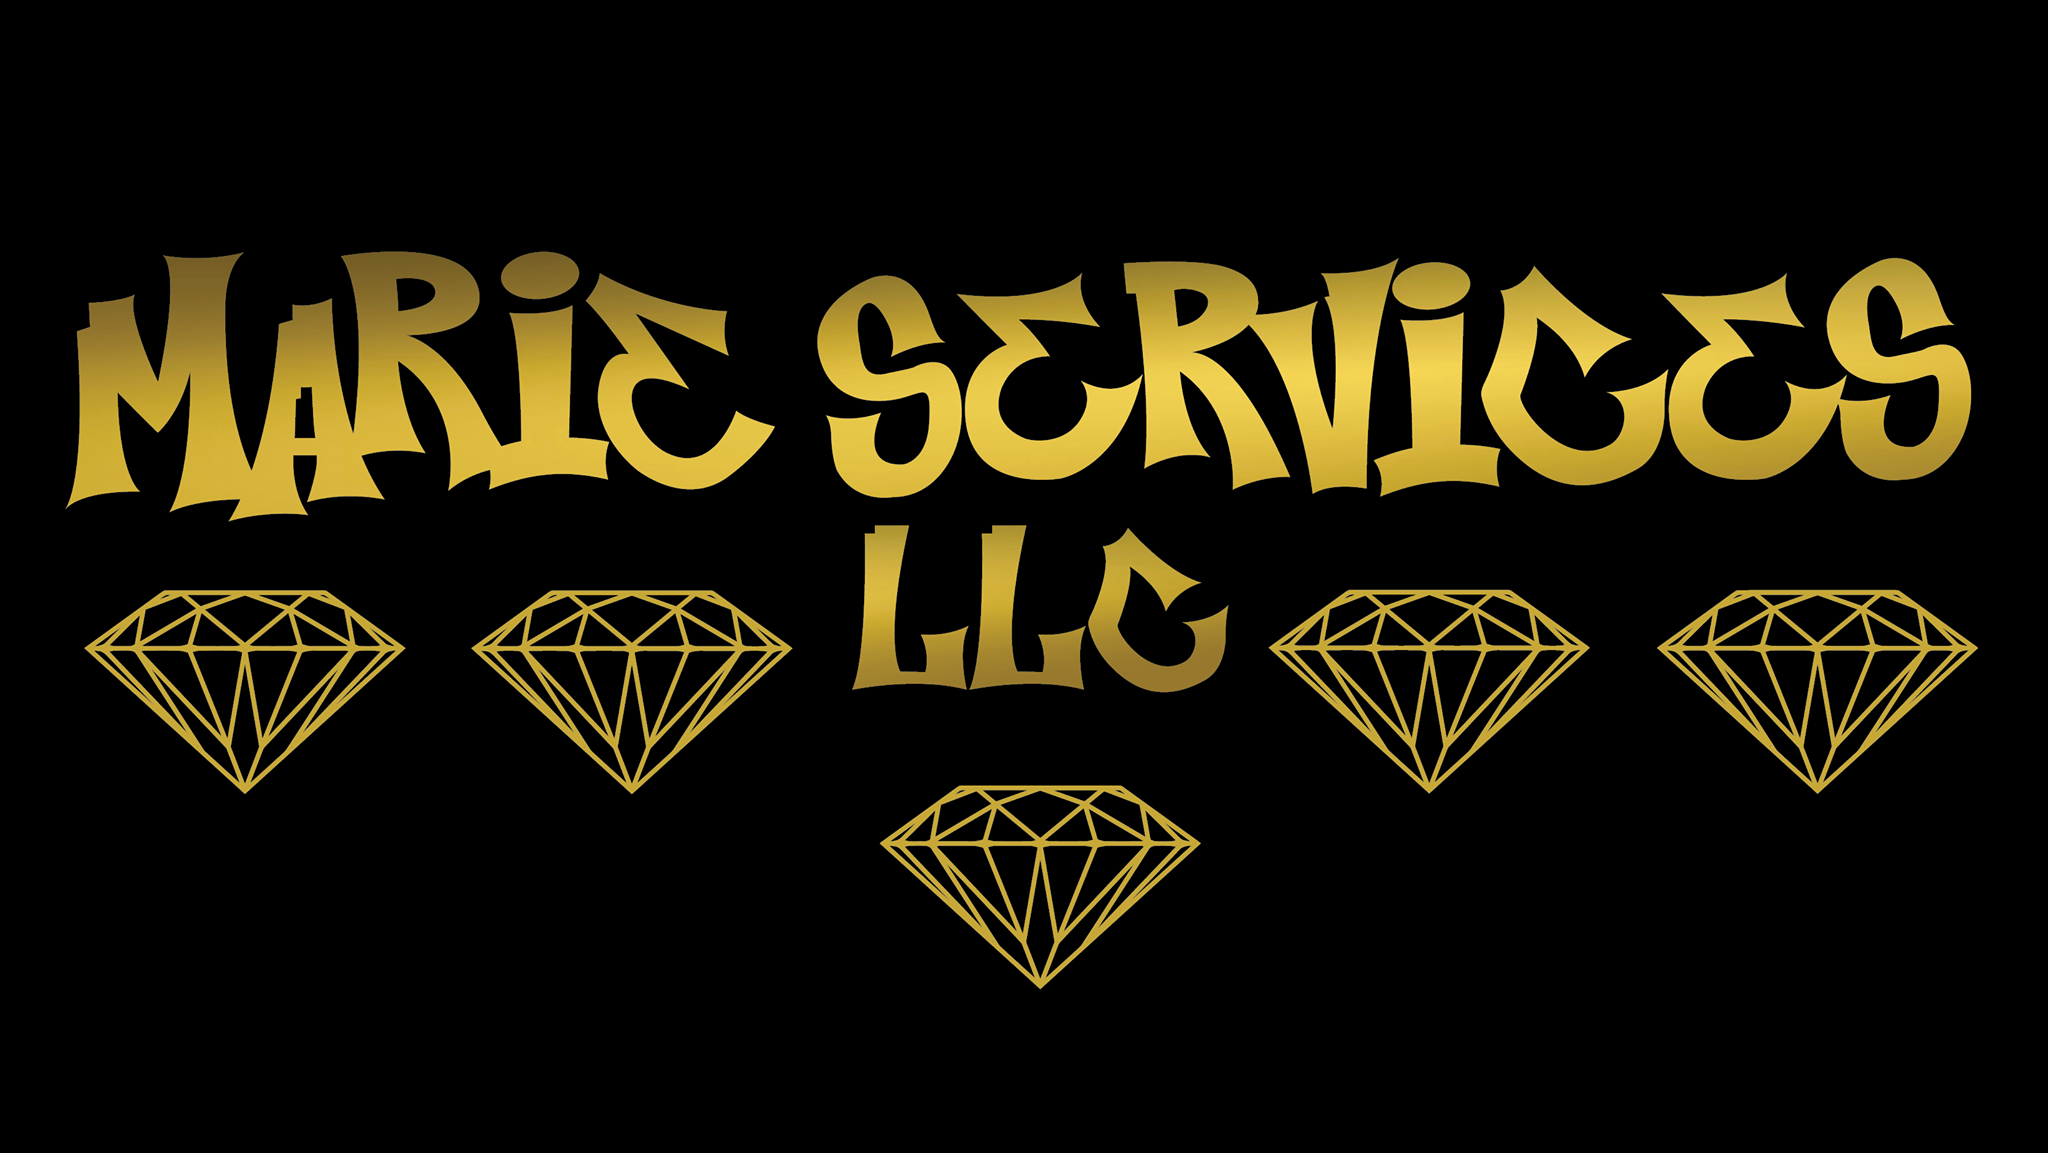 Marie services